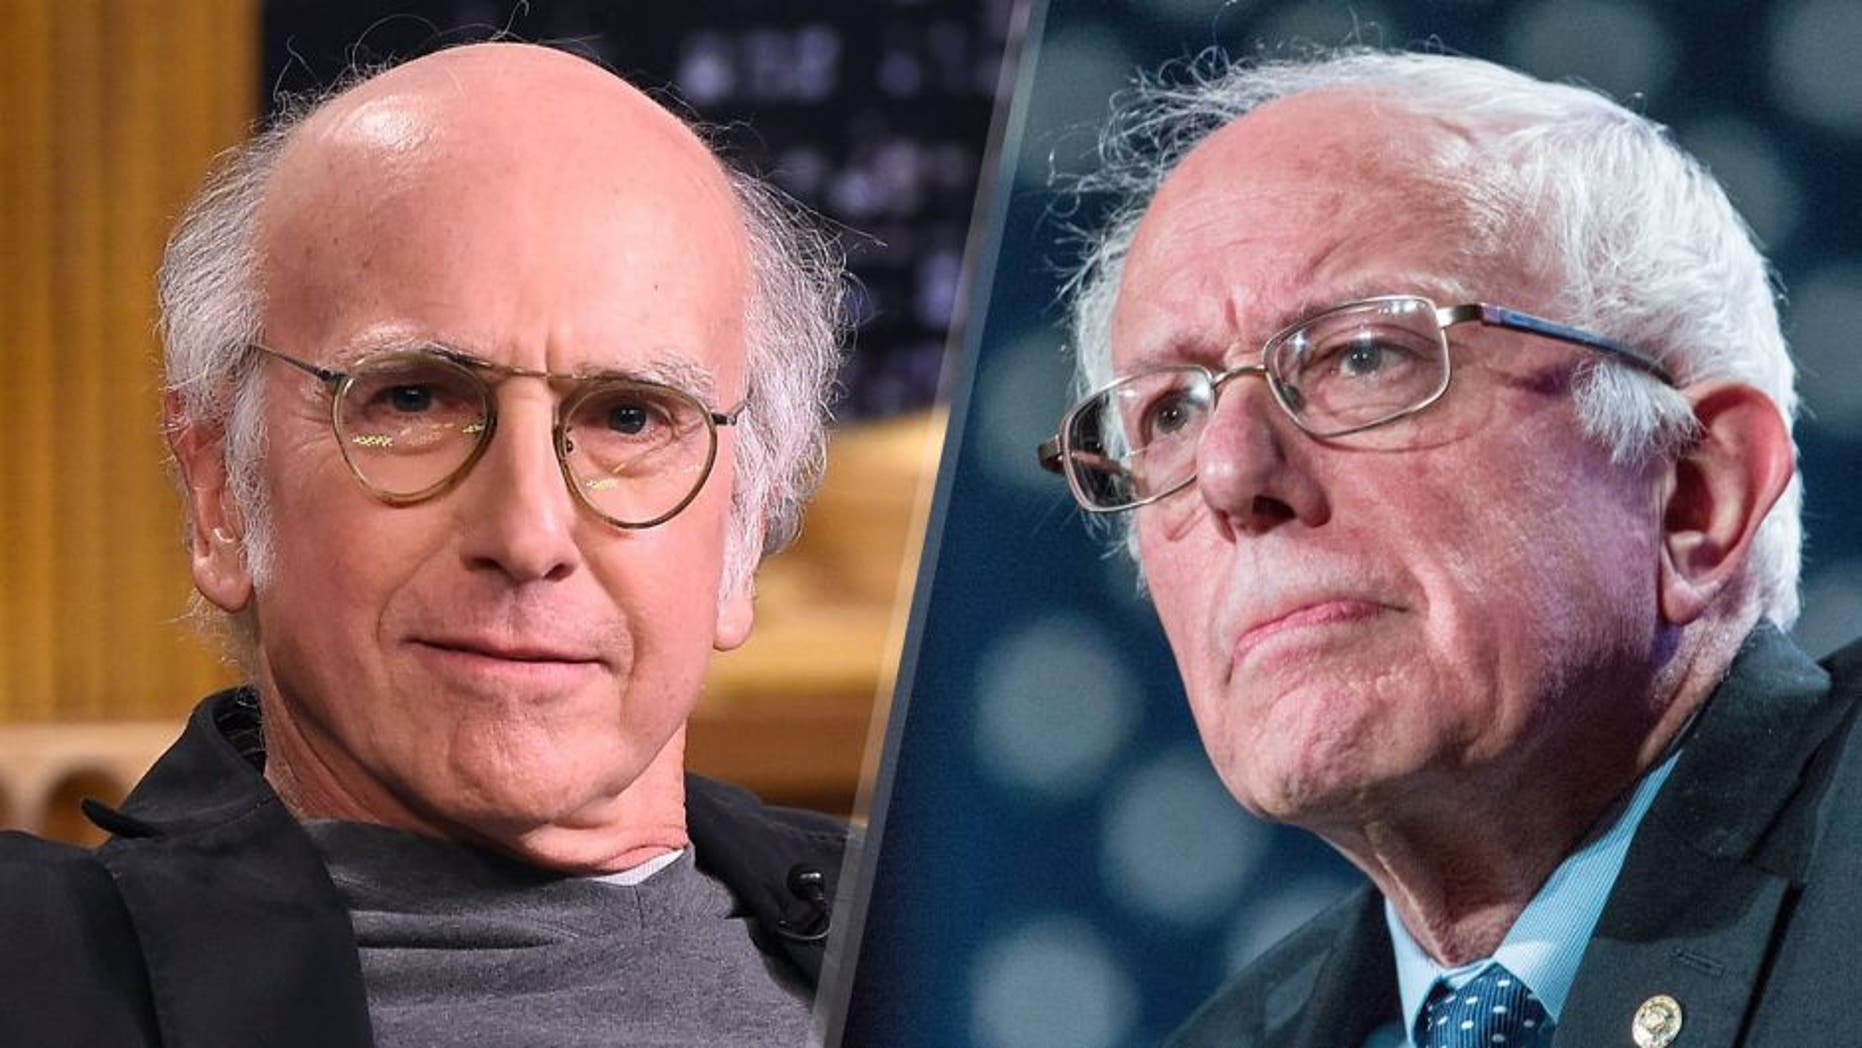 Larry David visits 'The Tonight Show Starring Jimmy Fallon' at Rockefeller Center on June 8, 2015 in New York City. (Photo by Theo Wargo/NBC/Getty Images for 'The Tonight Show Starring Jimmy Fallon') Democratic presidential hopeful Sen. Bernie Sanders (D-VT) speaks at the New Hampshire Democratic Party's 2016 McIntyre Shaheen 100 Club Celebration on February 5, 2016 in Manchester, New Hampshire. The New Hampshire primary is next Tuesday, February 9, 2016. (Photo by Andrew Burton/Getty Images)